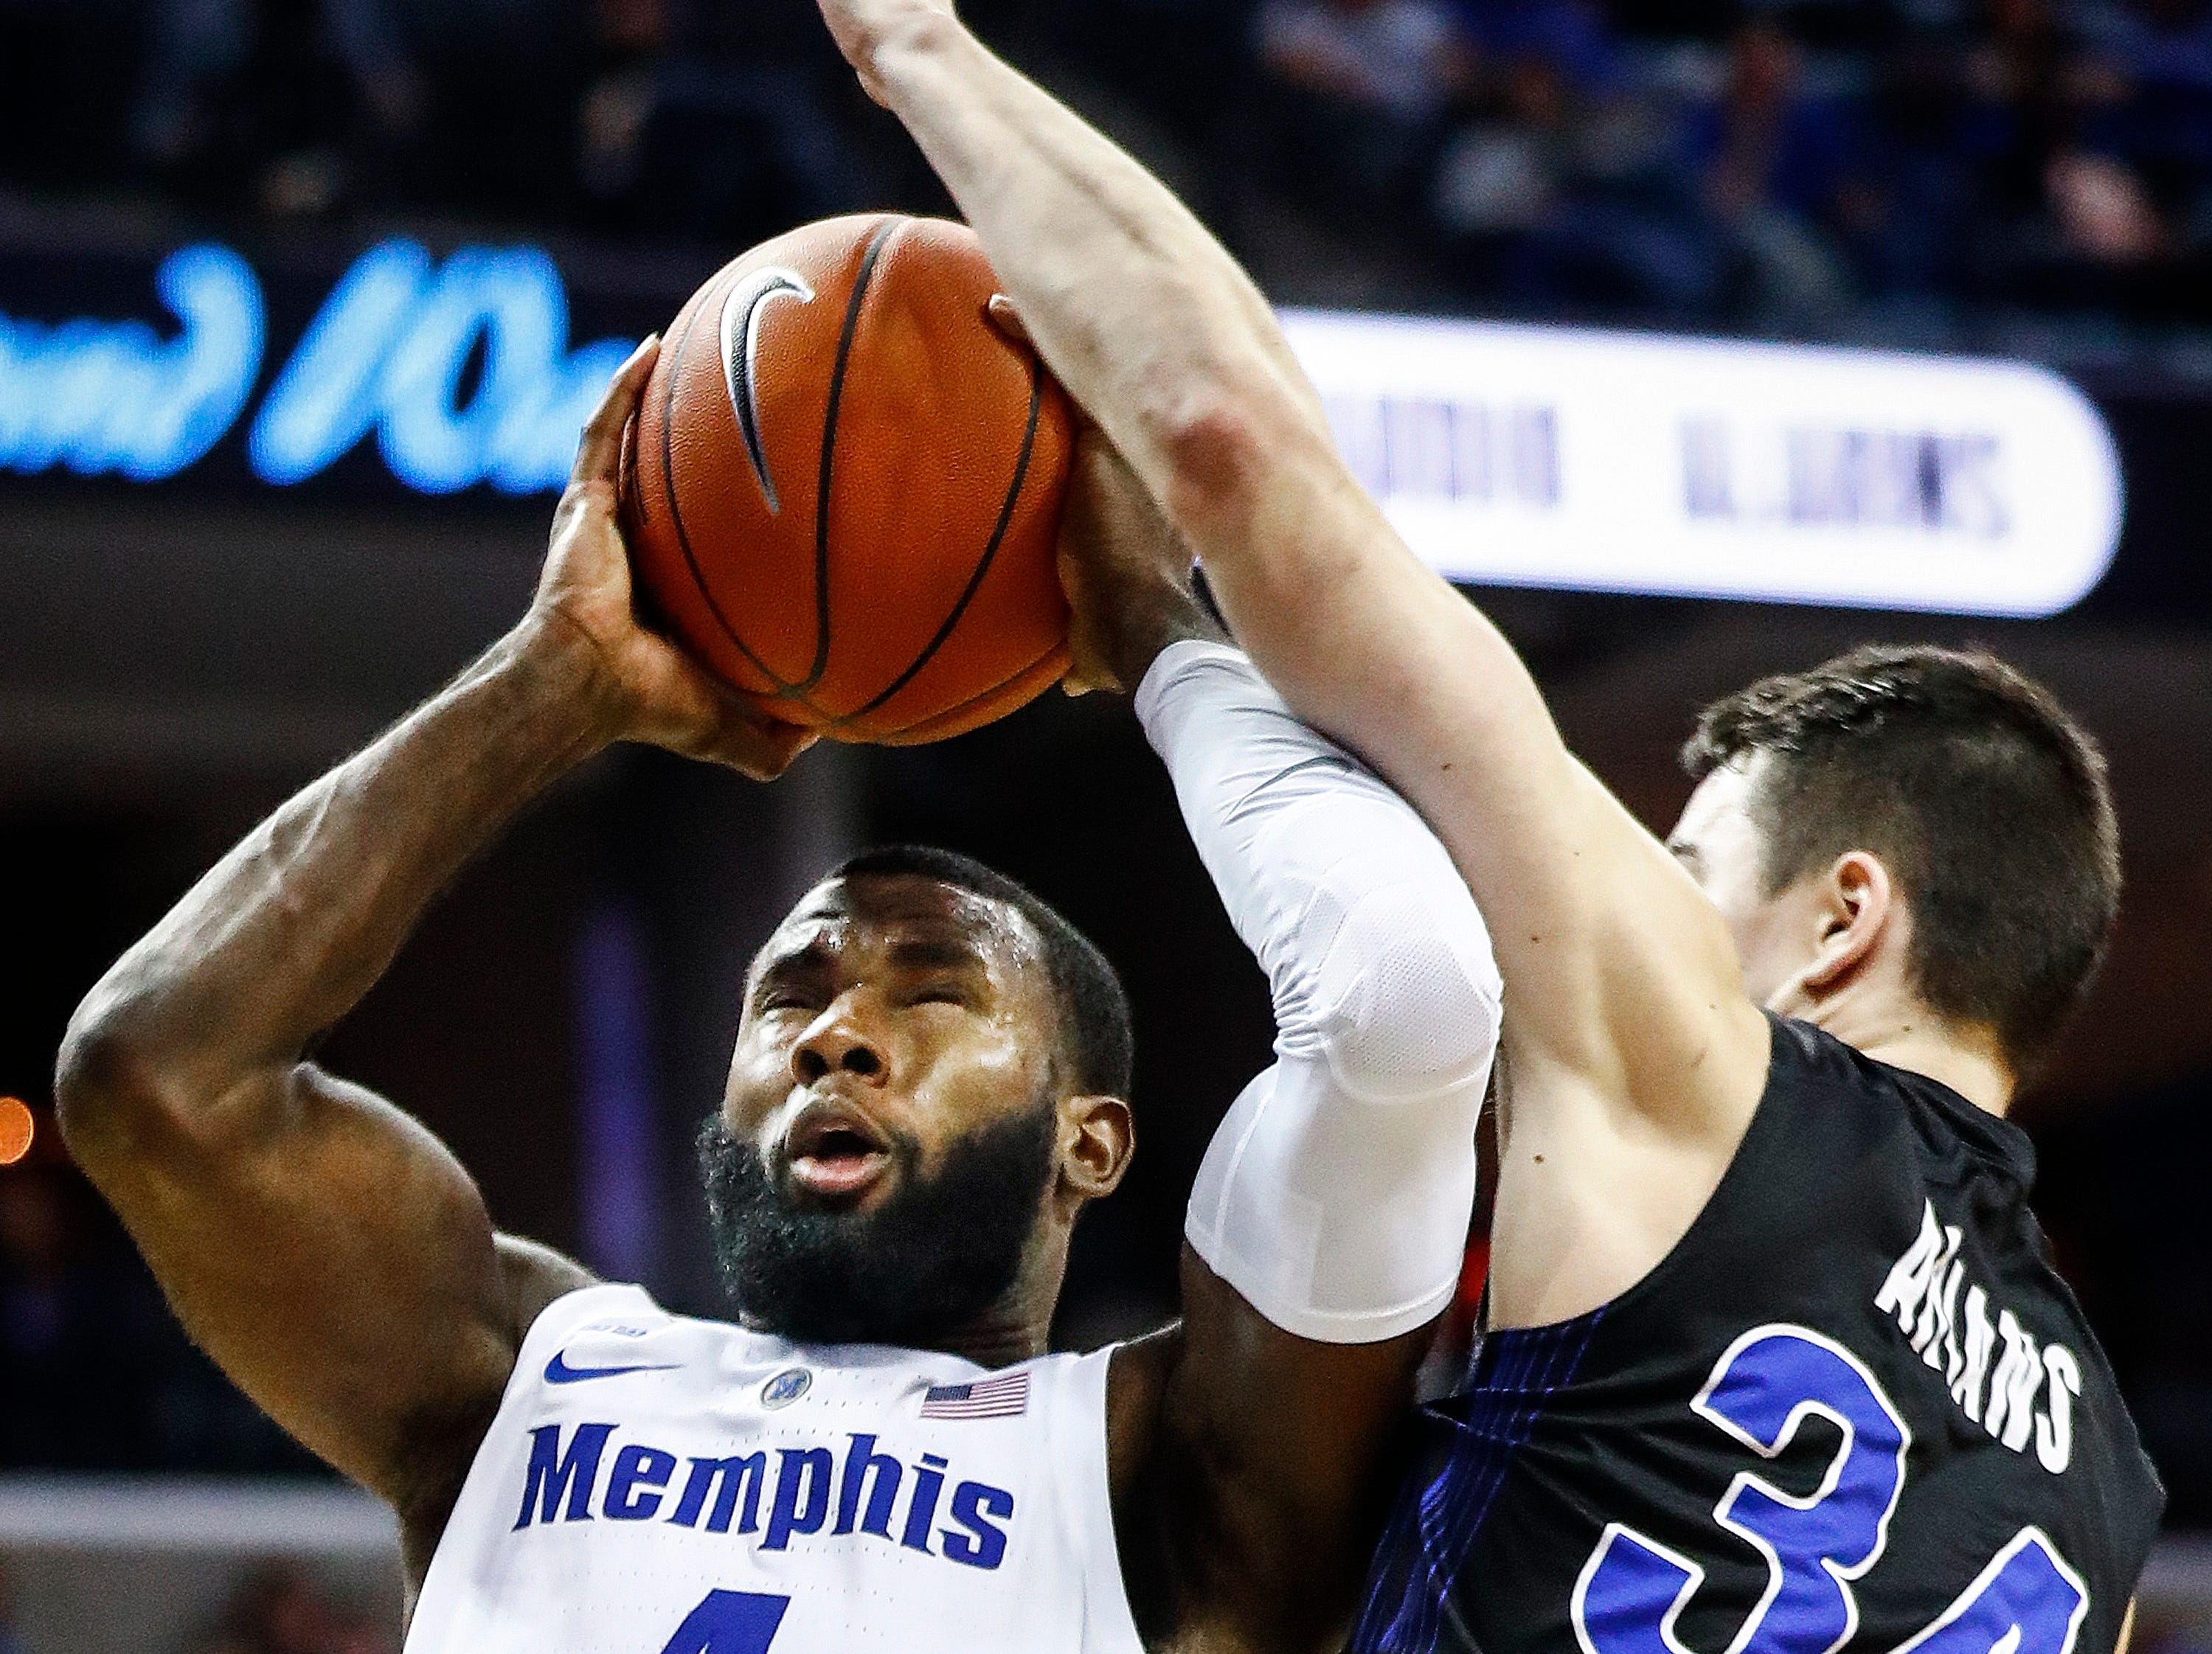 Memphis forward Raynere Thornton (left) drives for a lay-up while being fouled by South Dakota State defender Alex Arians (right) during action at the FedExFourm., Tuesday, December 4, 2018.